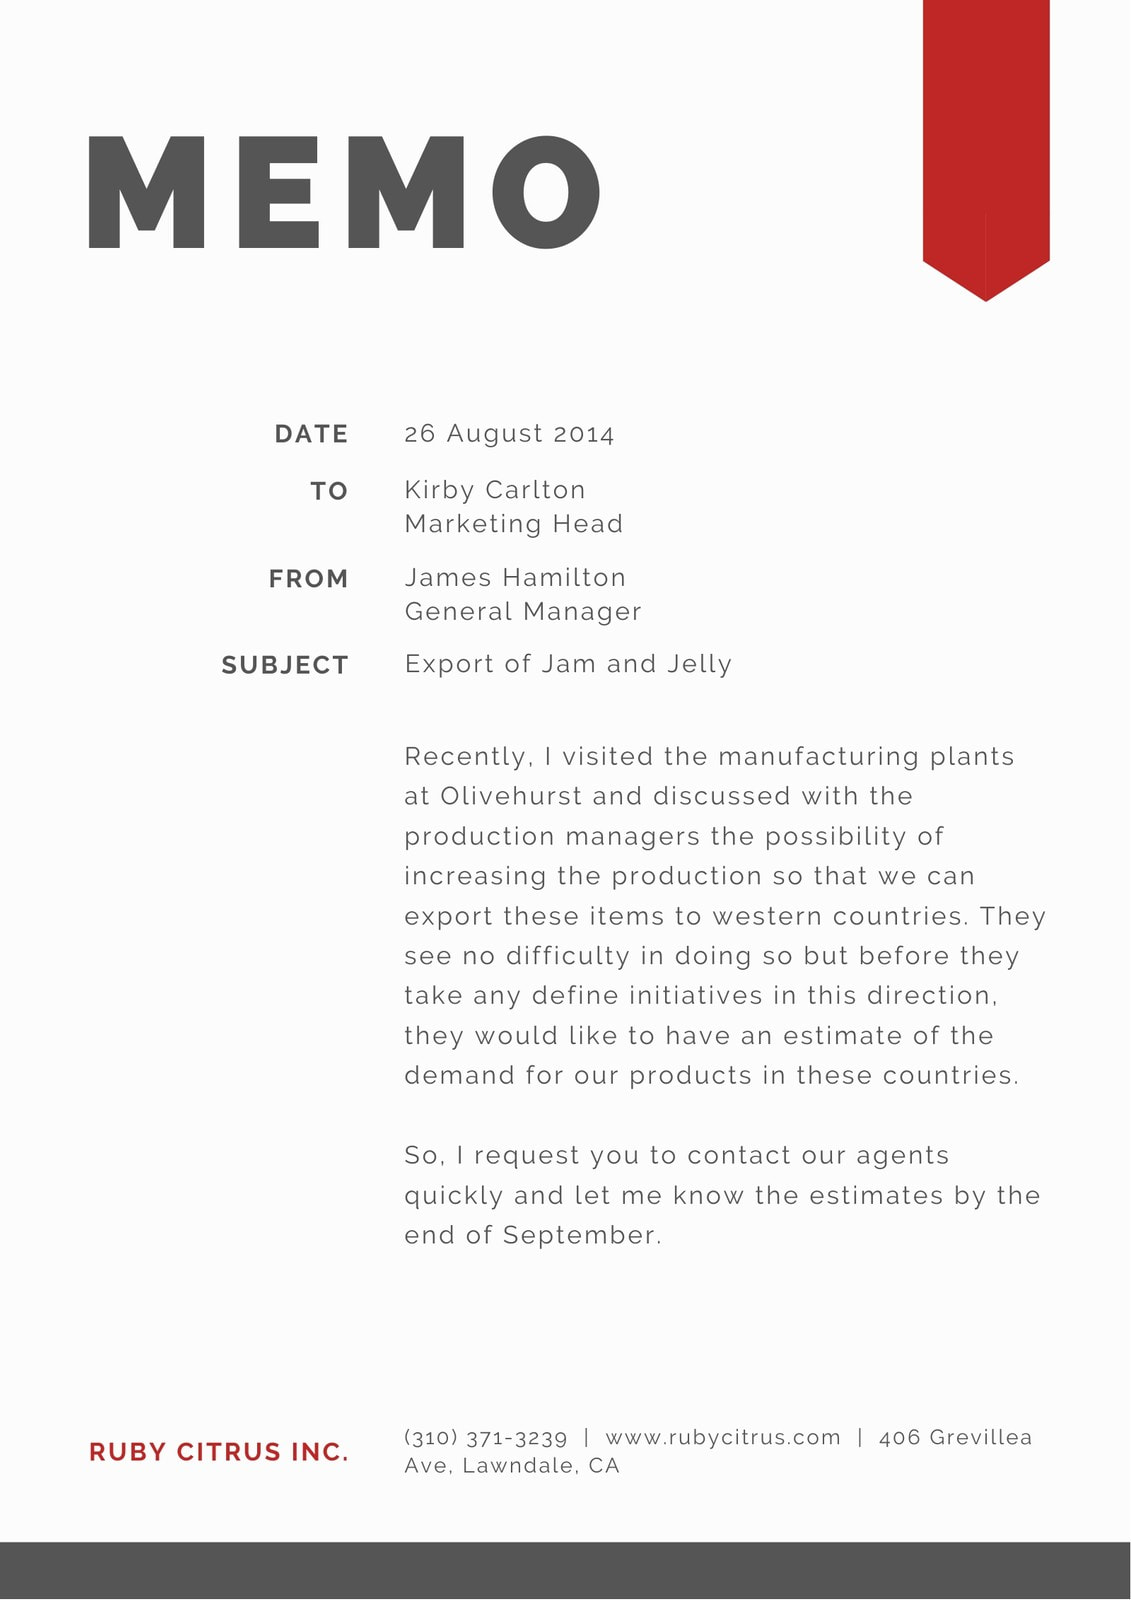 Simple Black White and Red General Corporate Memo